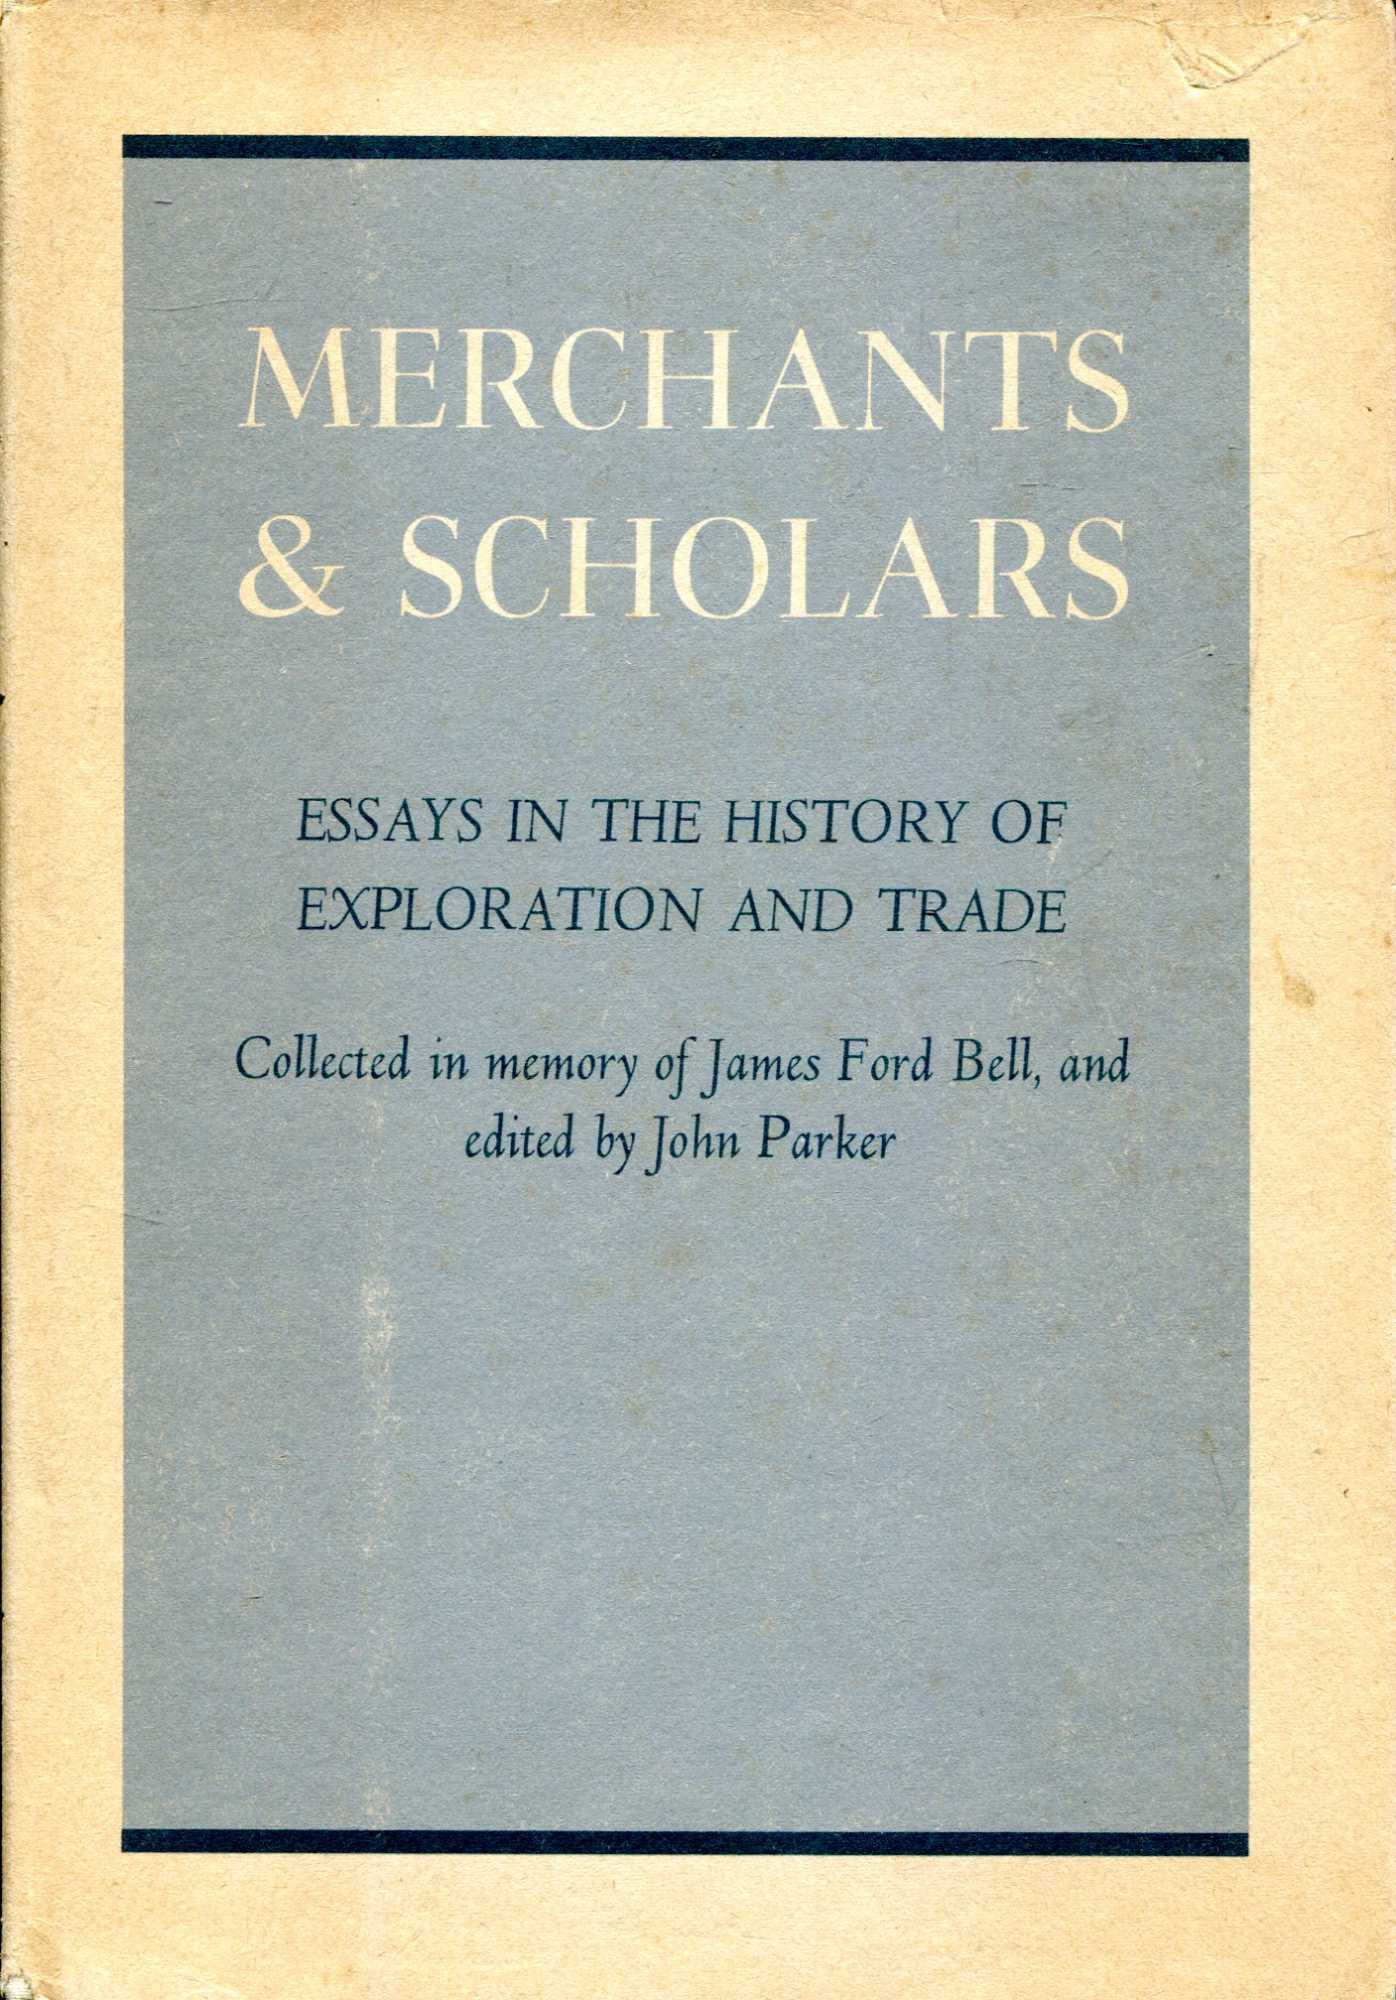 Image for Merchants & scholars, essays in the history of Exploration and Trade : collected in memory of James Ford Bell